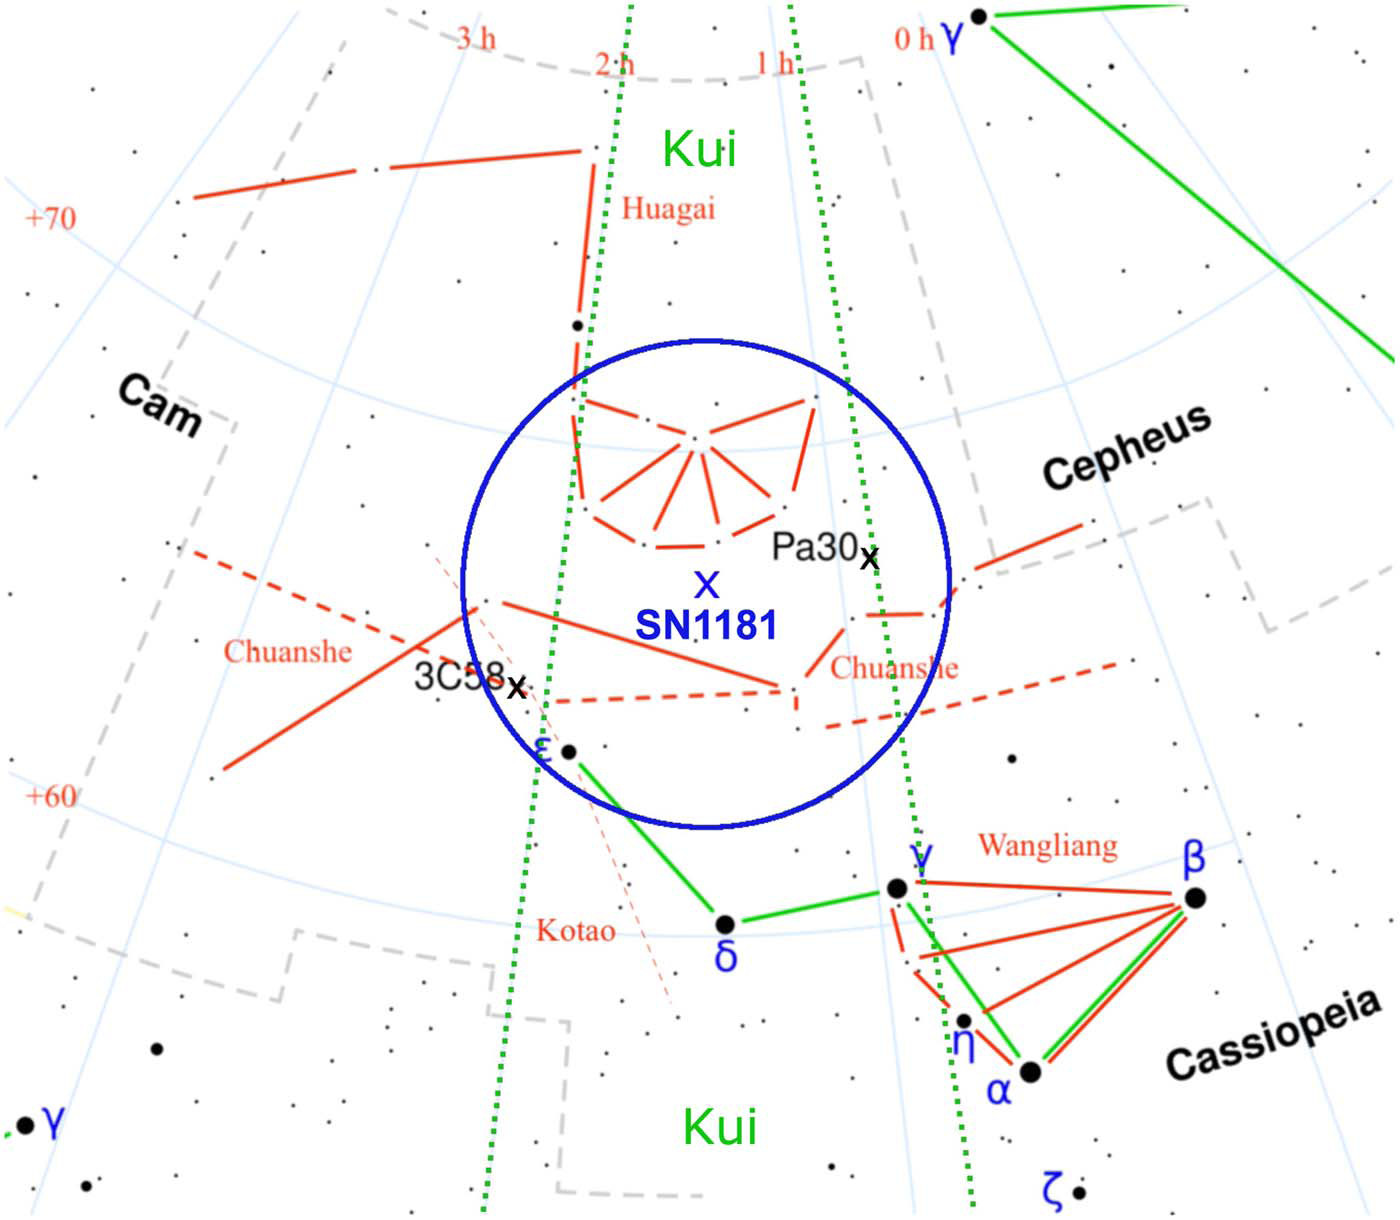 SM1181 star chart with Chinese asterisms